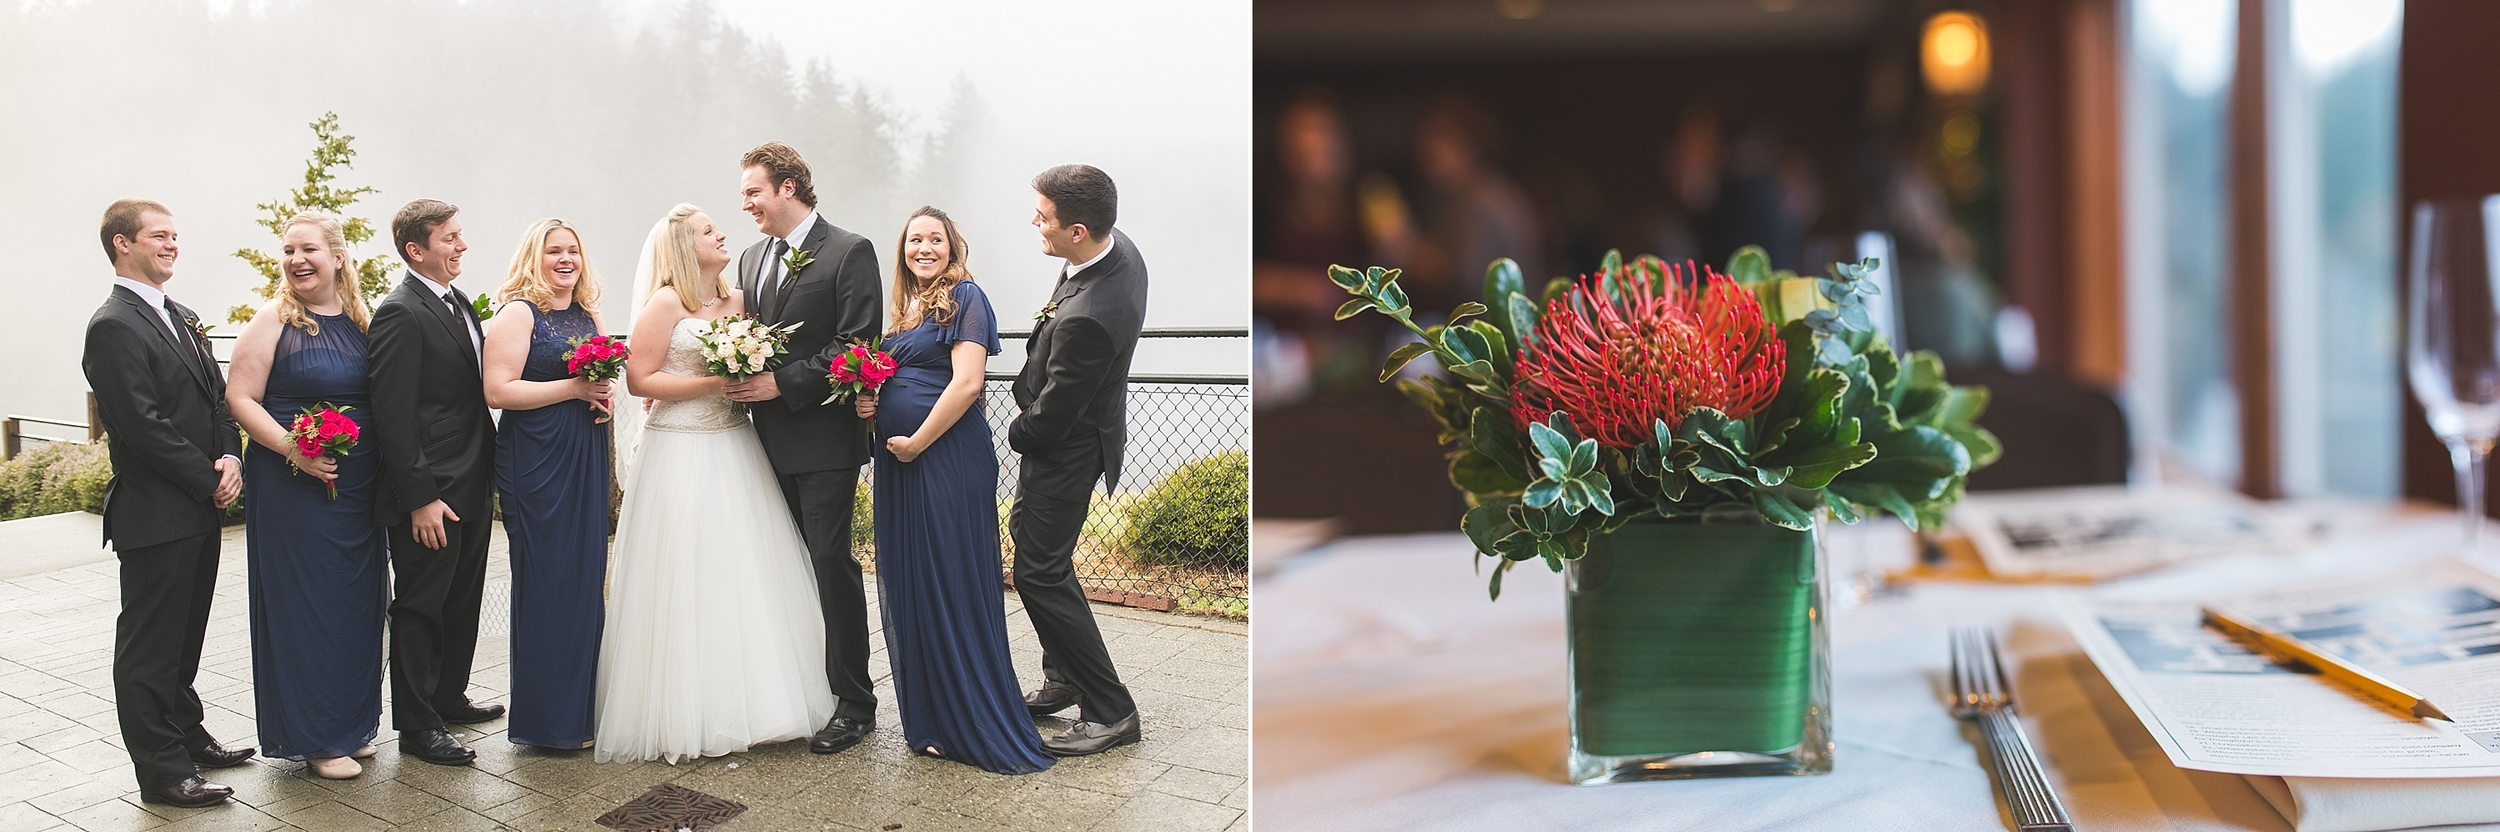 ashley vos photography seattle area wedding photographer_0228.jpg